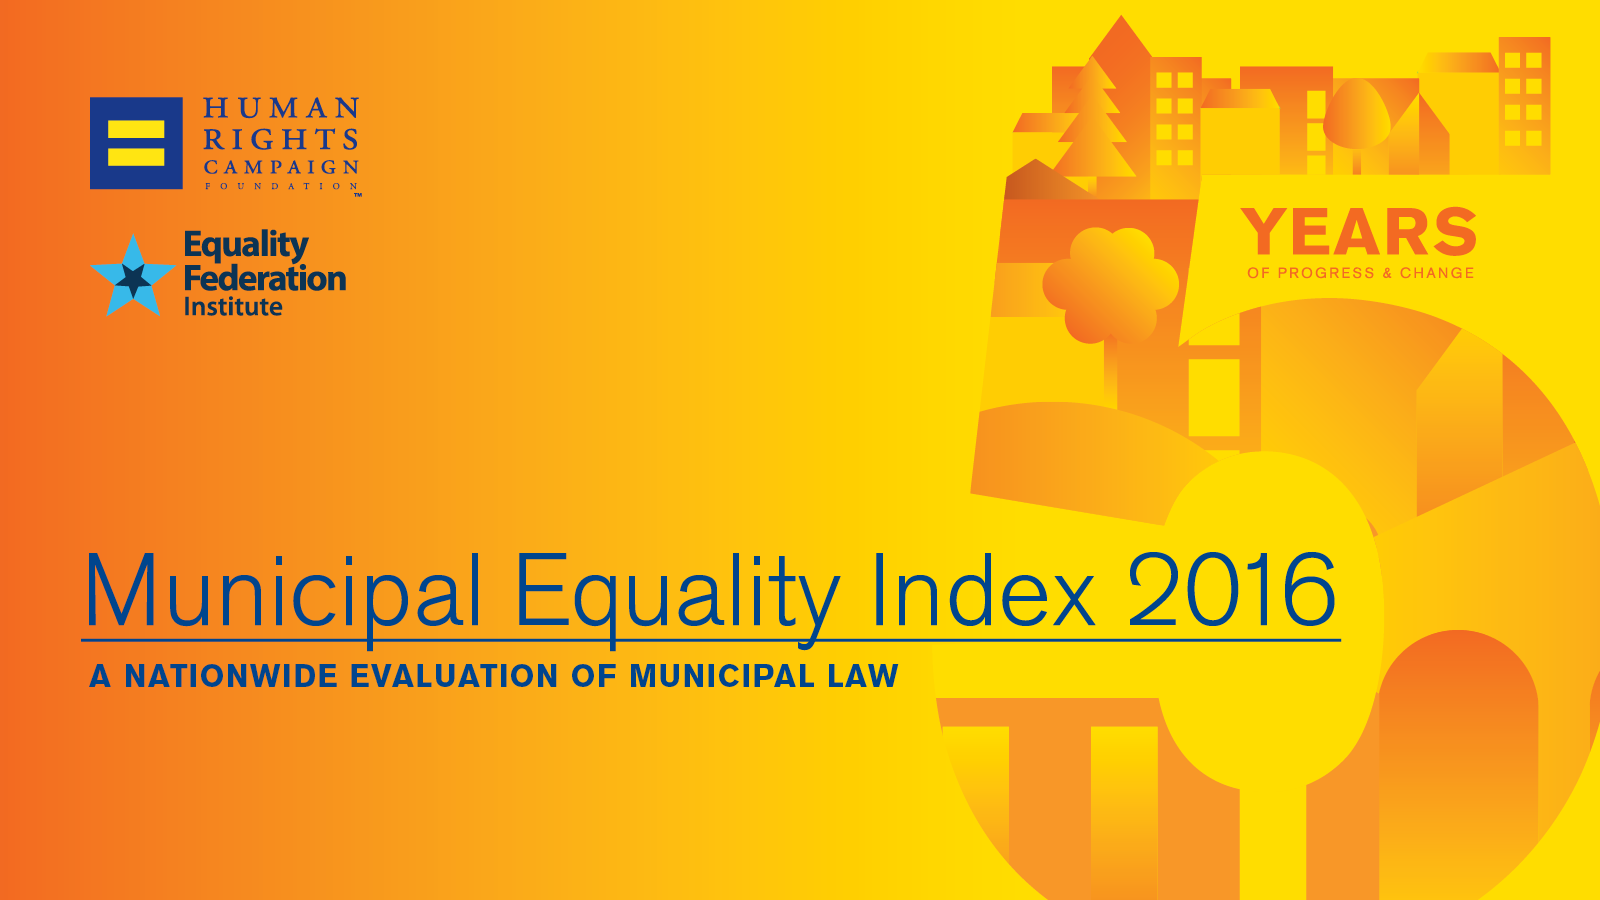 Dallas and Fort Worth receive 100 on Municipal Equality Index